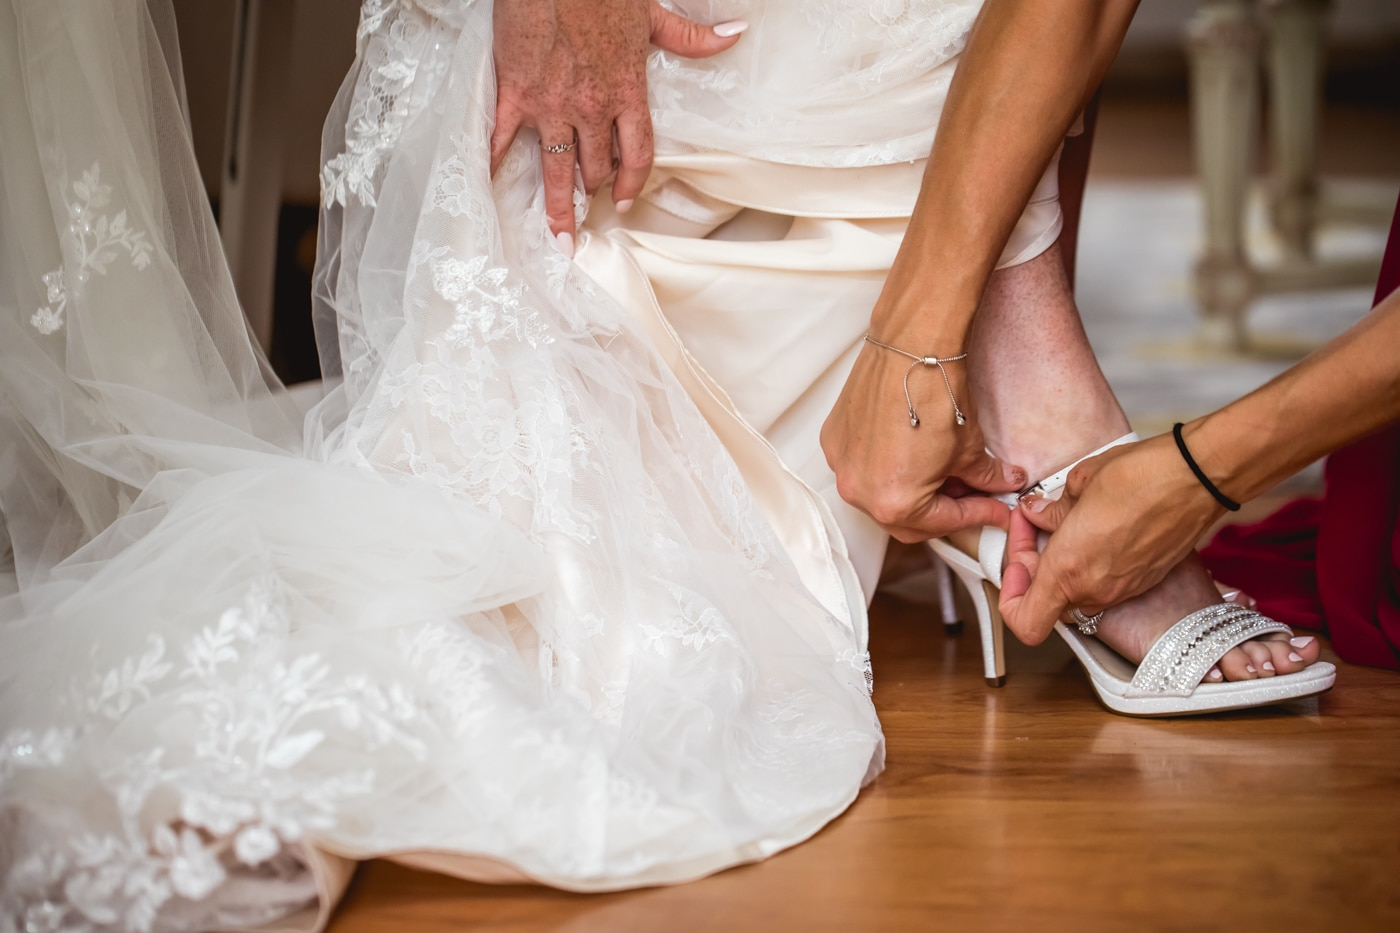 Bride adjusting shoes in wedding dress